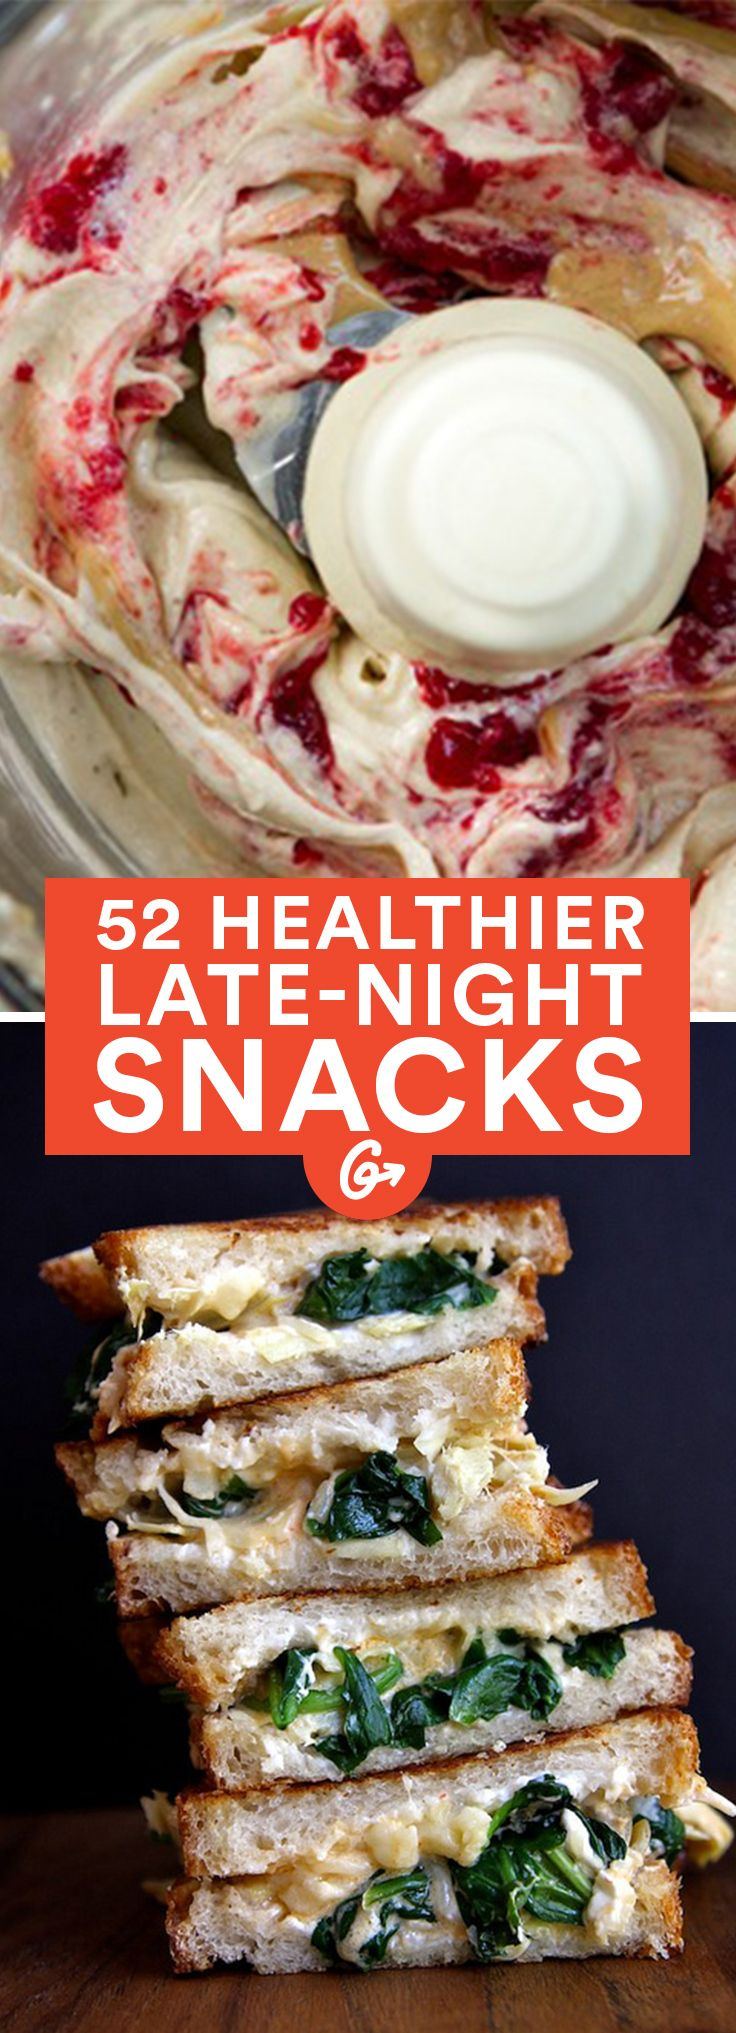 Got the late-night munchies? Skip fast food or greasy potato chips and refer to this list of... #healthier #snacks http://greatist.com/eat/healthy-recipe-alternatives-to-late-night-snacks